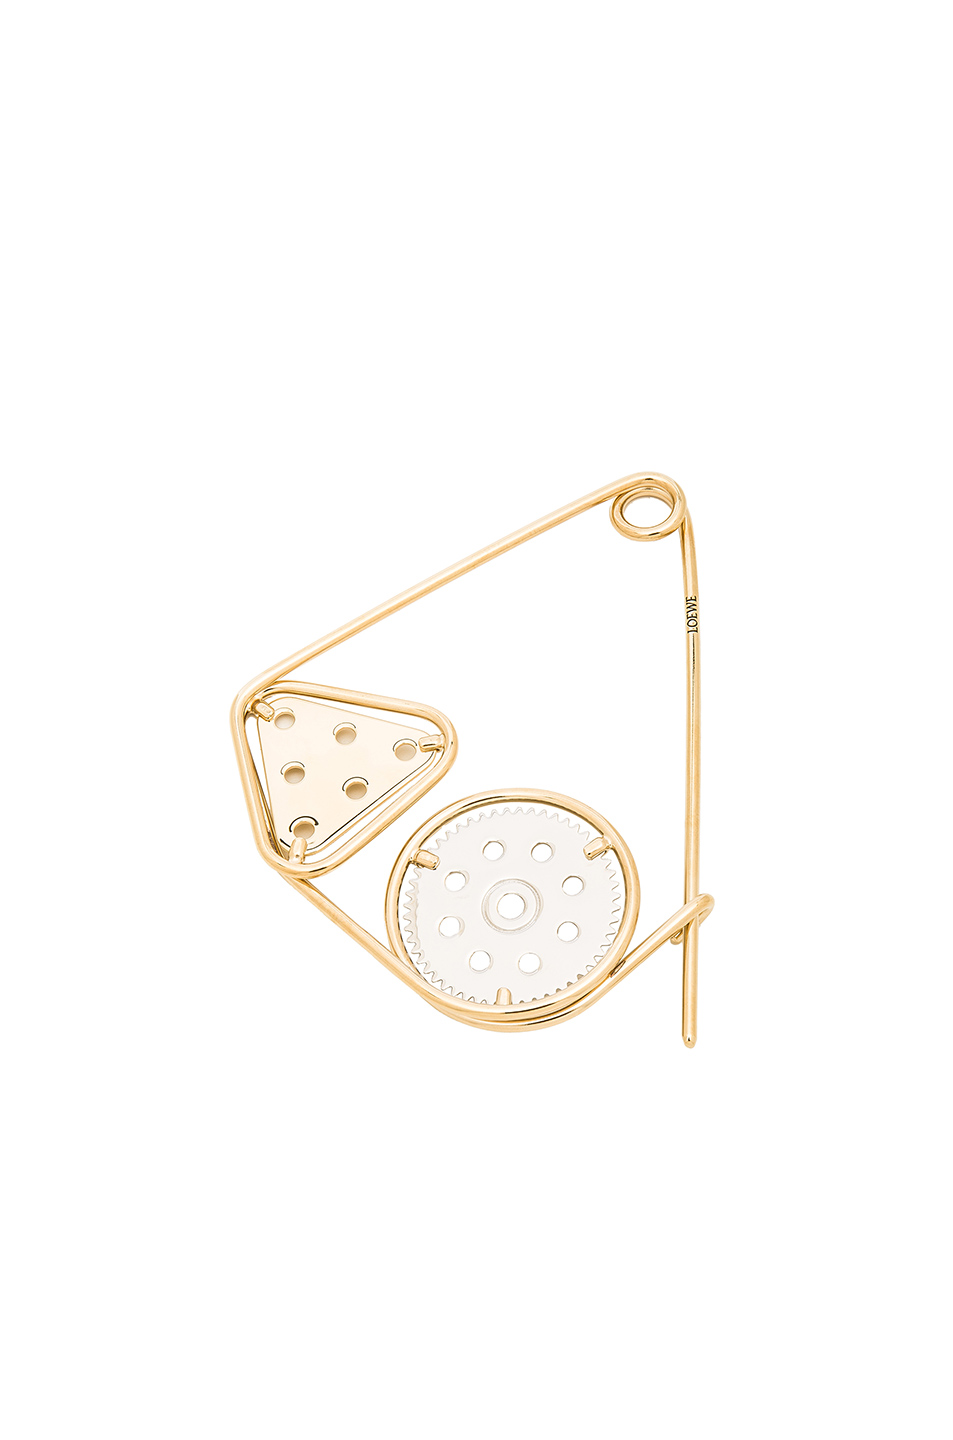 Loewe Double Meccano Pin in Metallics